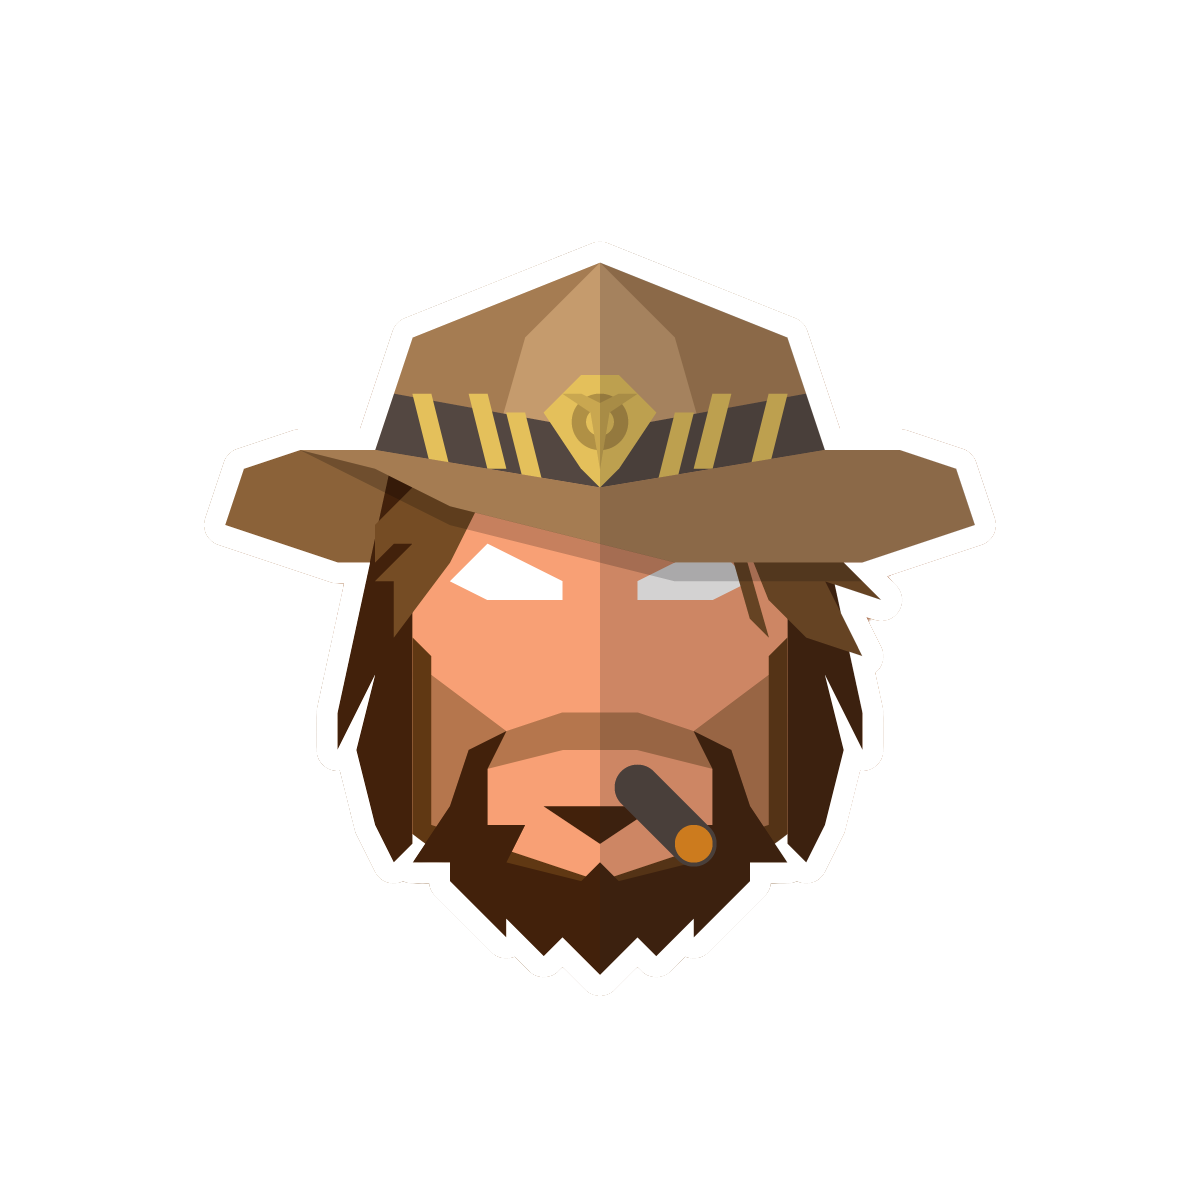 The Heroes Of Overwatch Sticker Pack messages sticker-8